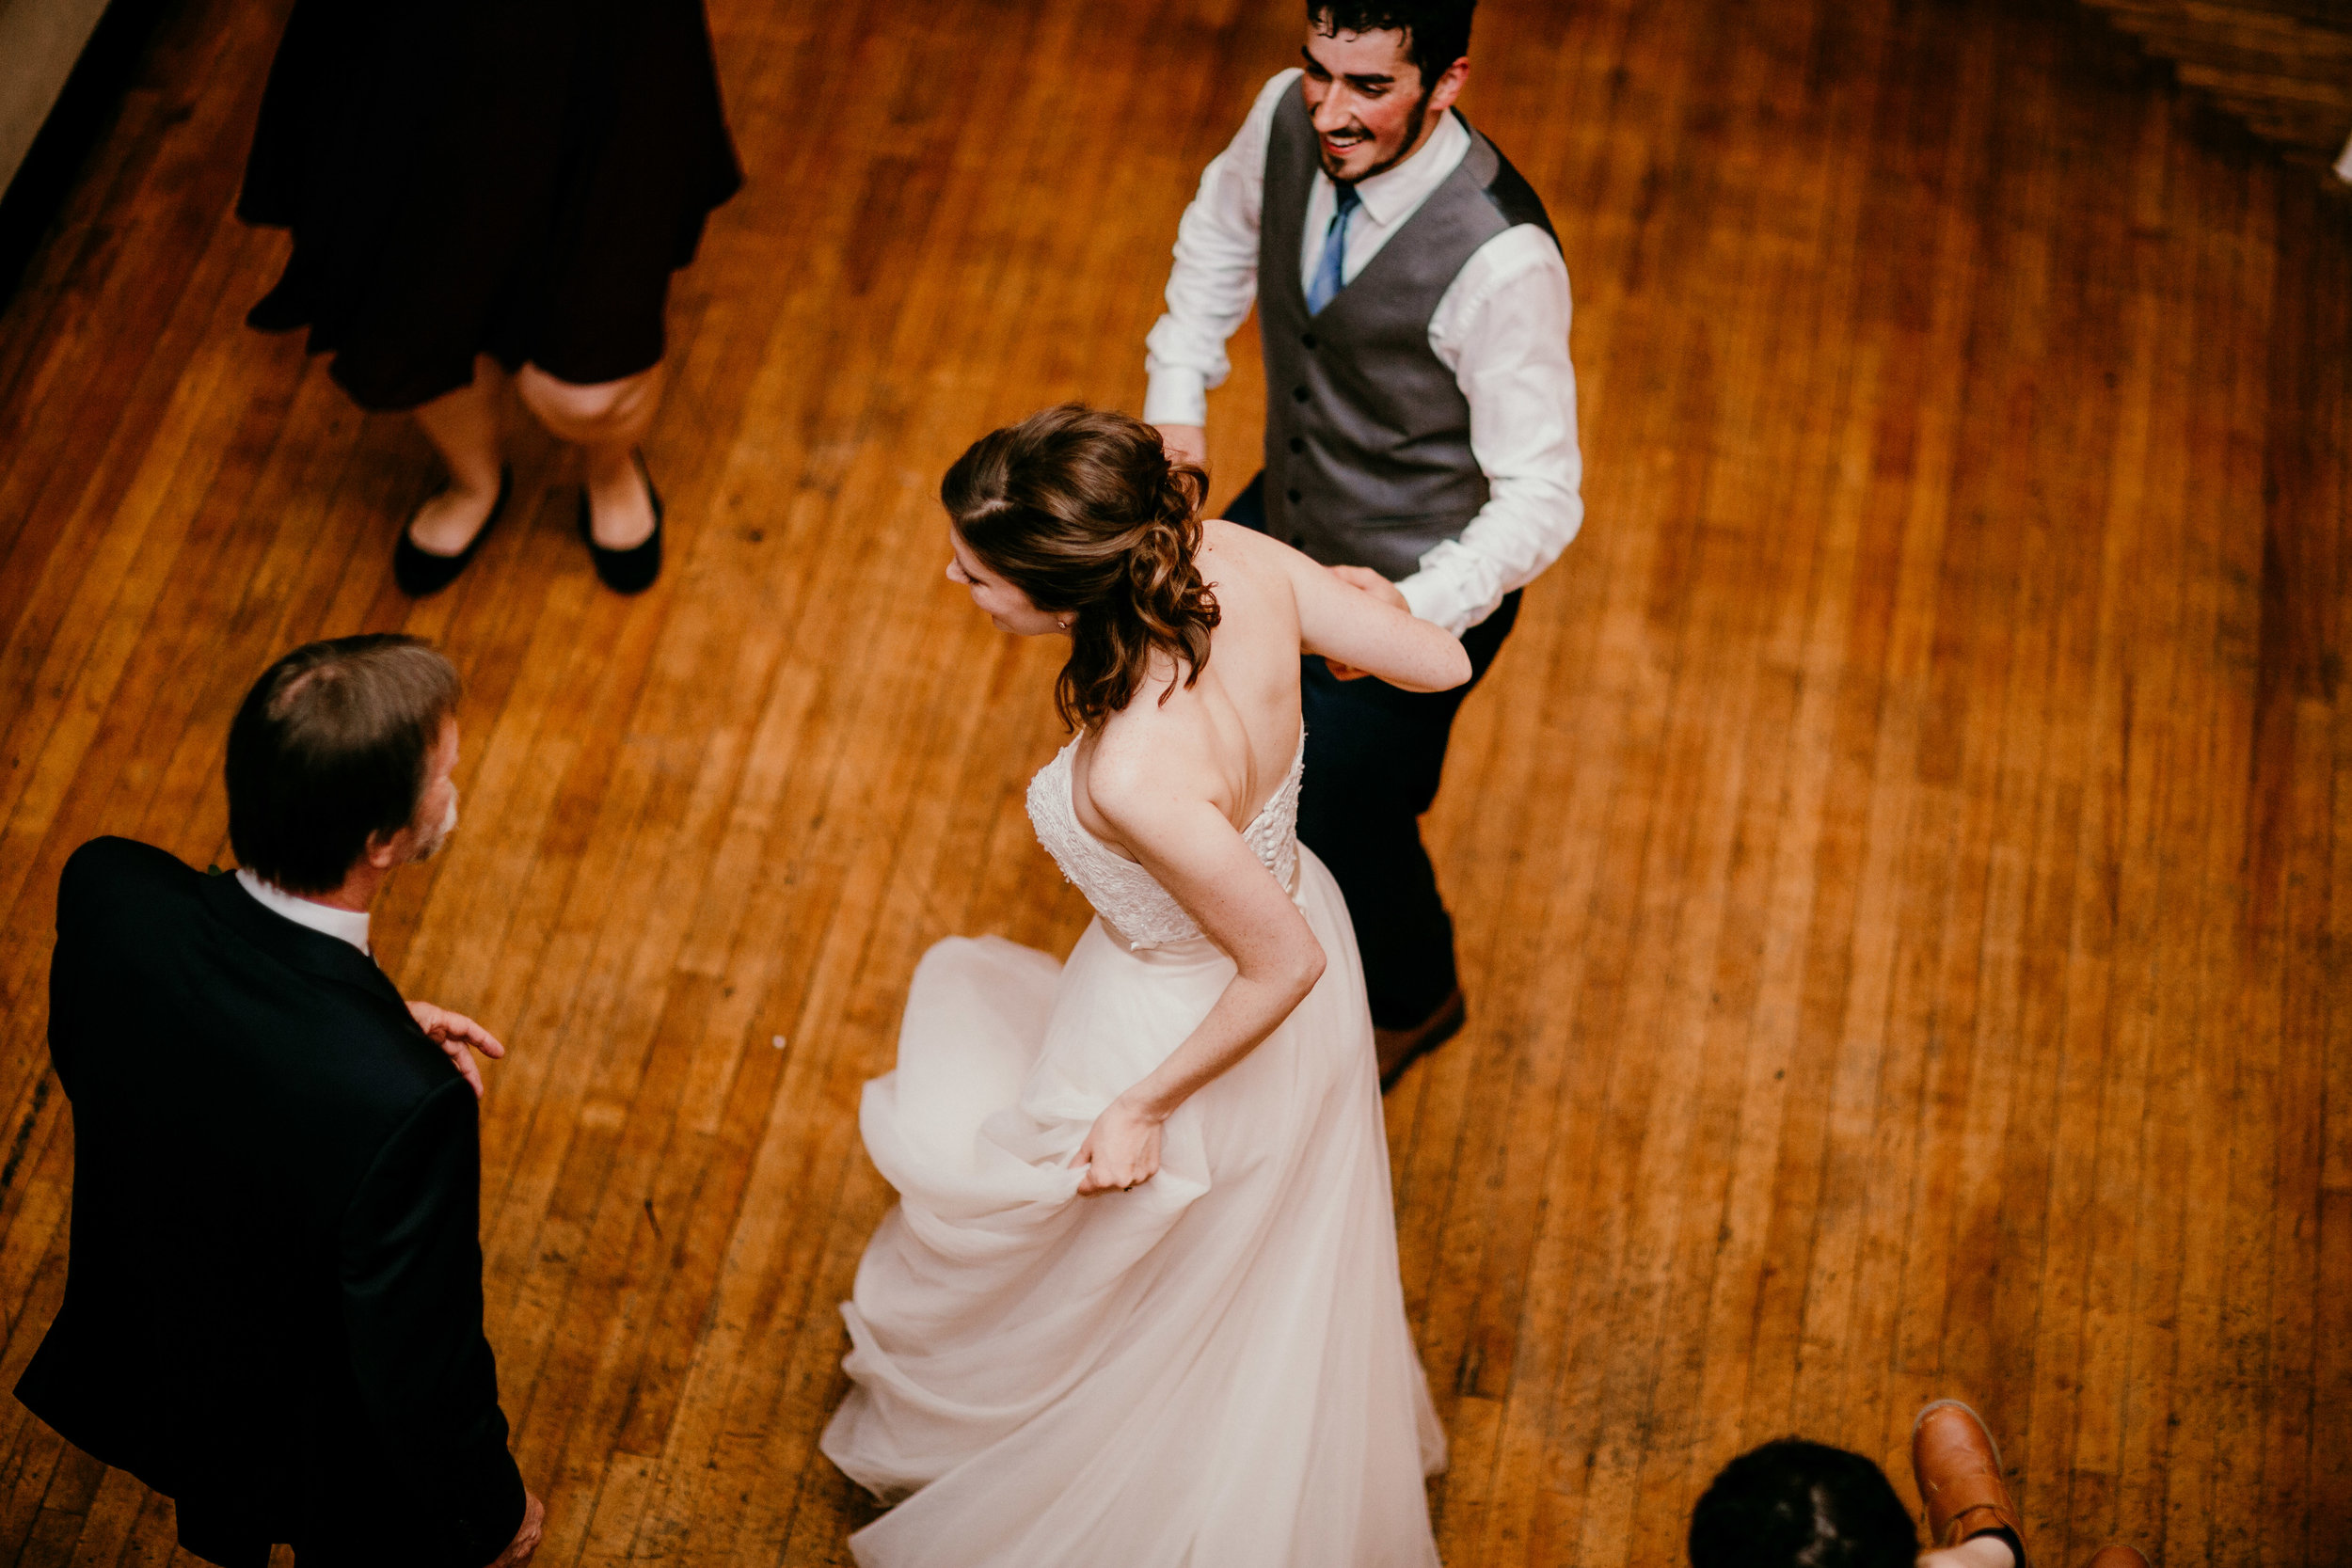 dancing at the reception of Shelbie & Jospeh's Summer Love Story : Kansas City Wedding   Hanna Hill Photography